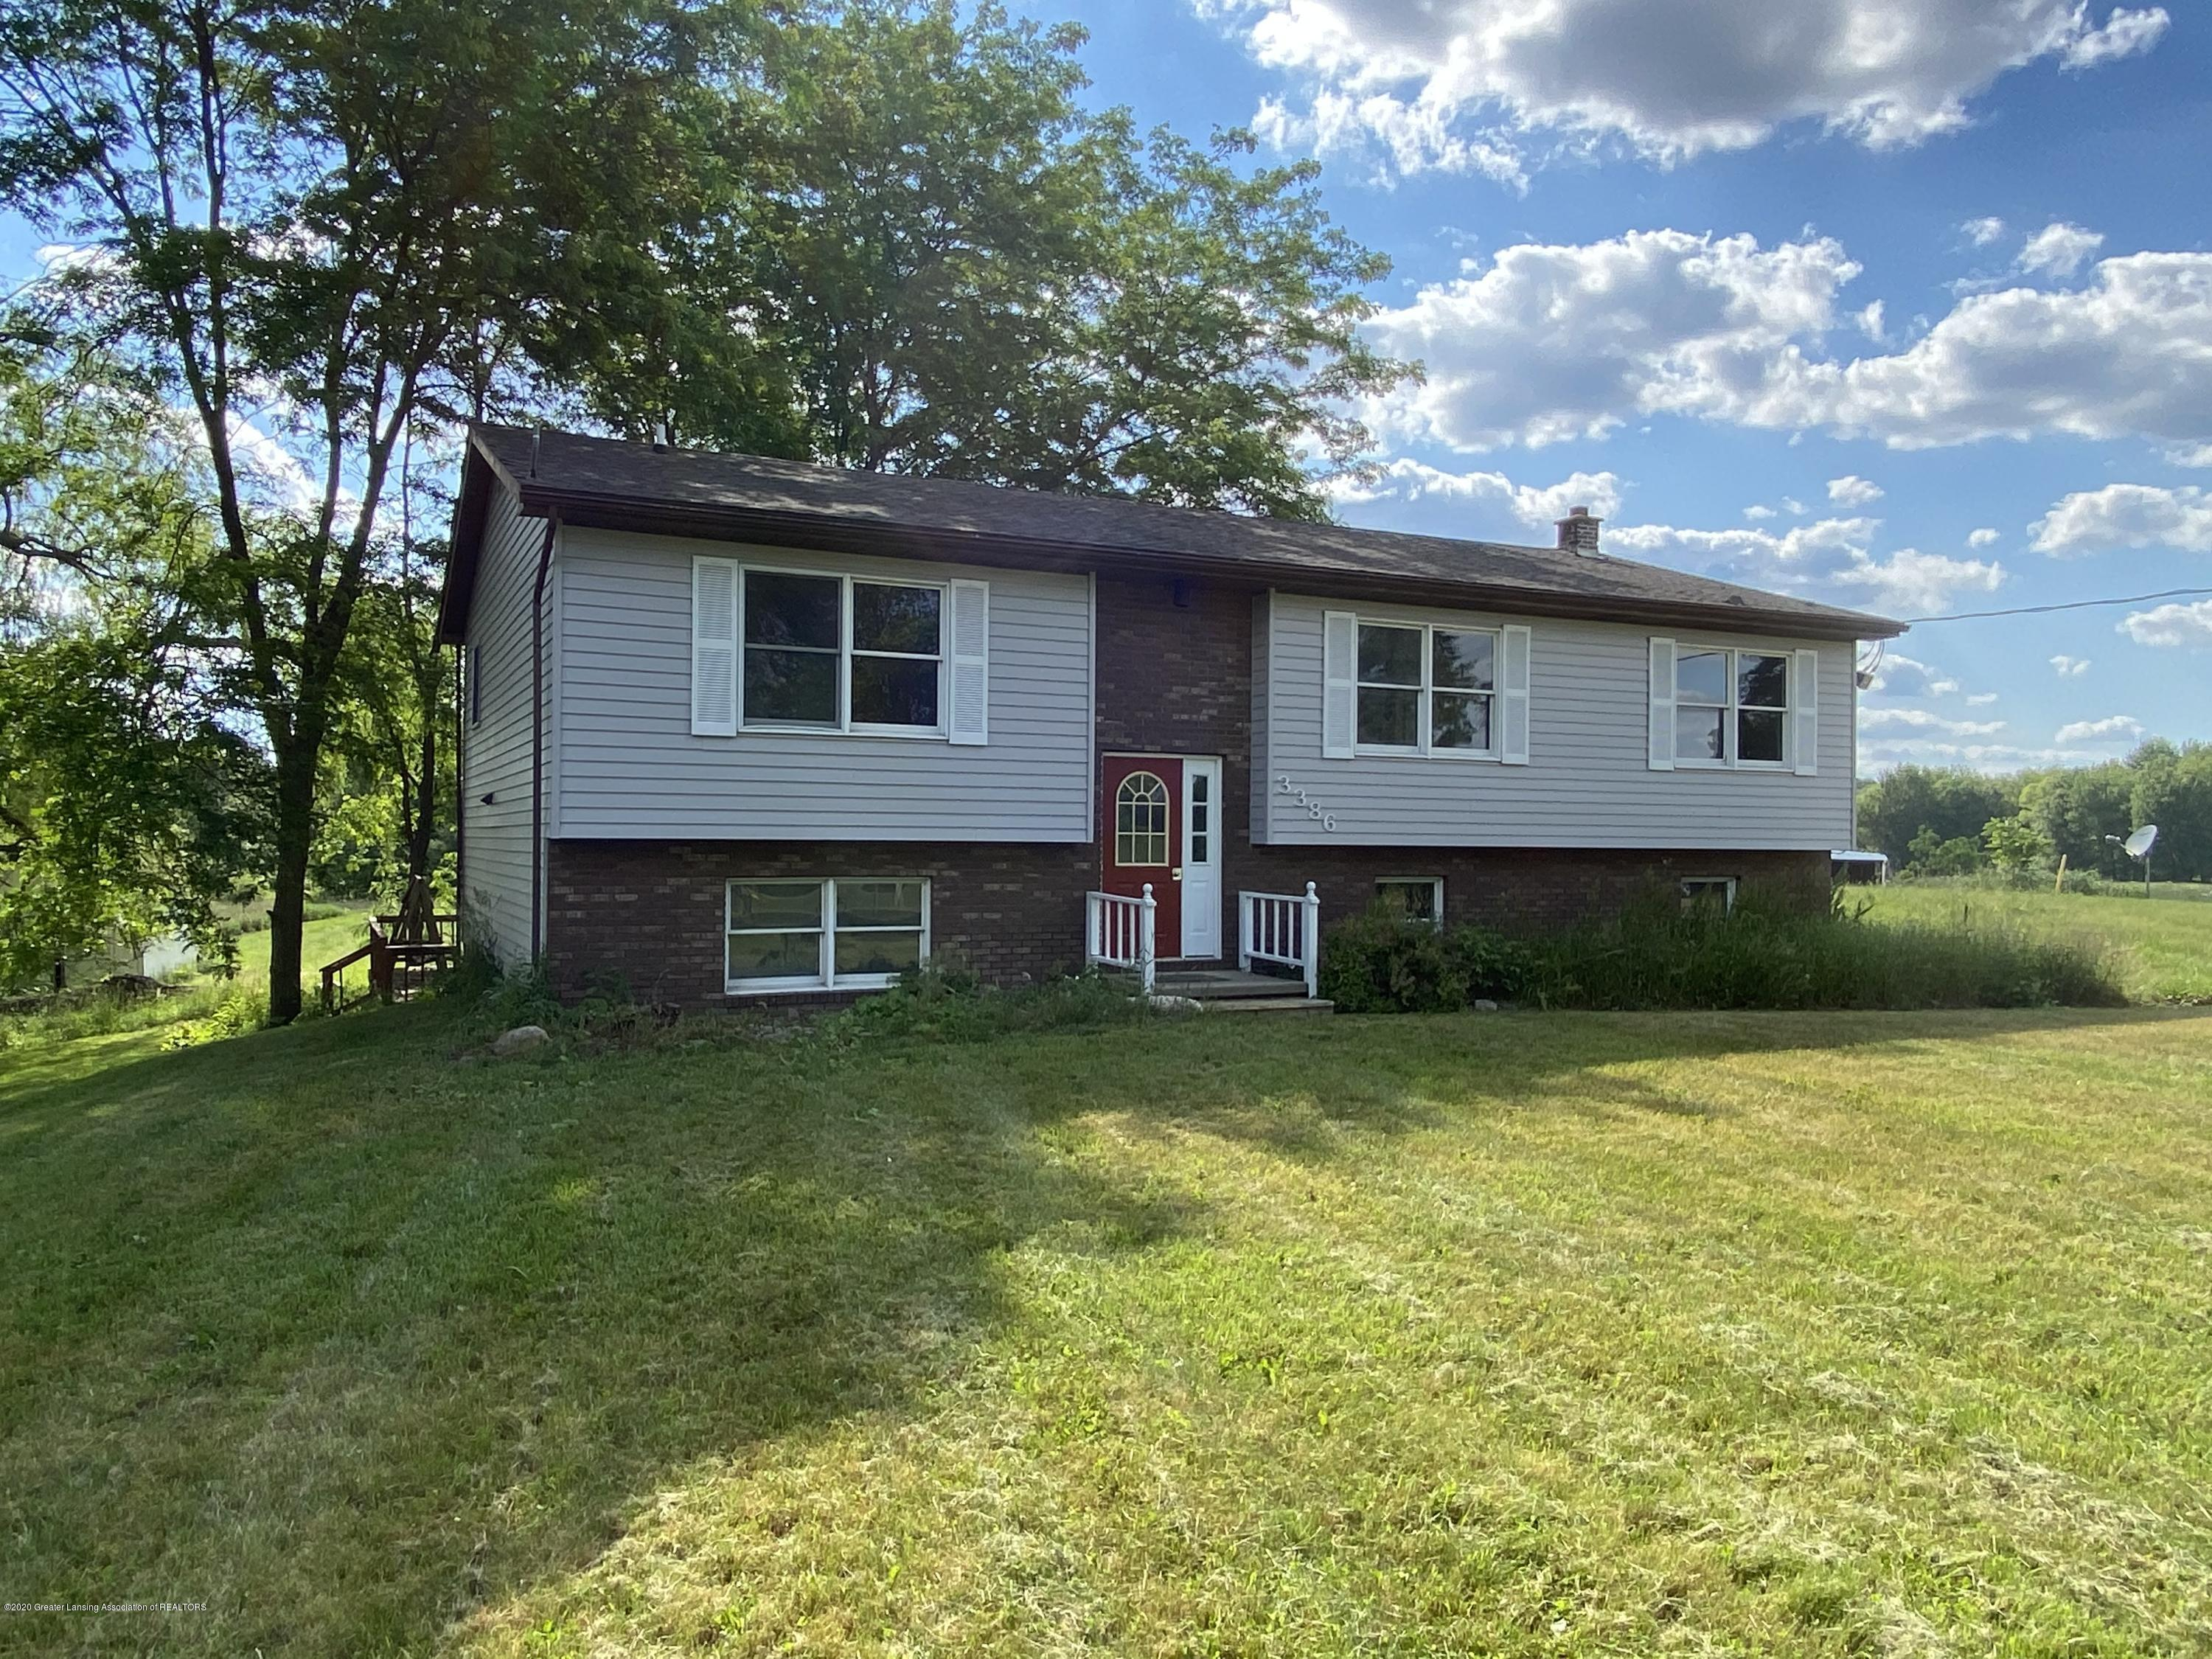 3386 Ionia Rd - 29 - 30